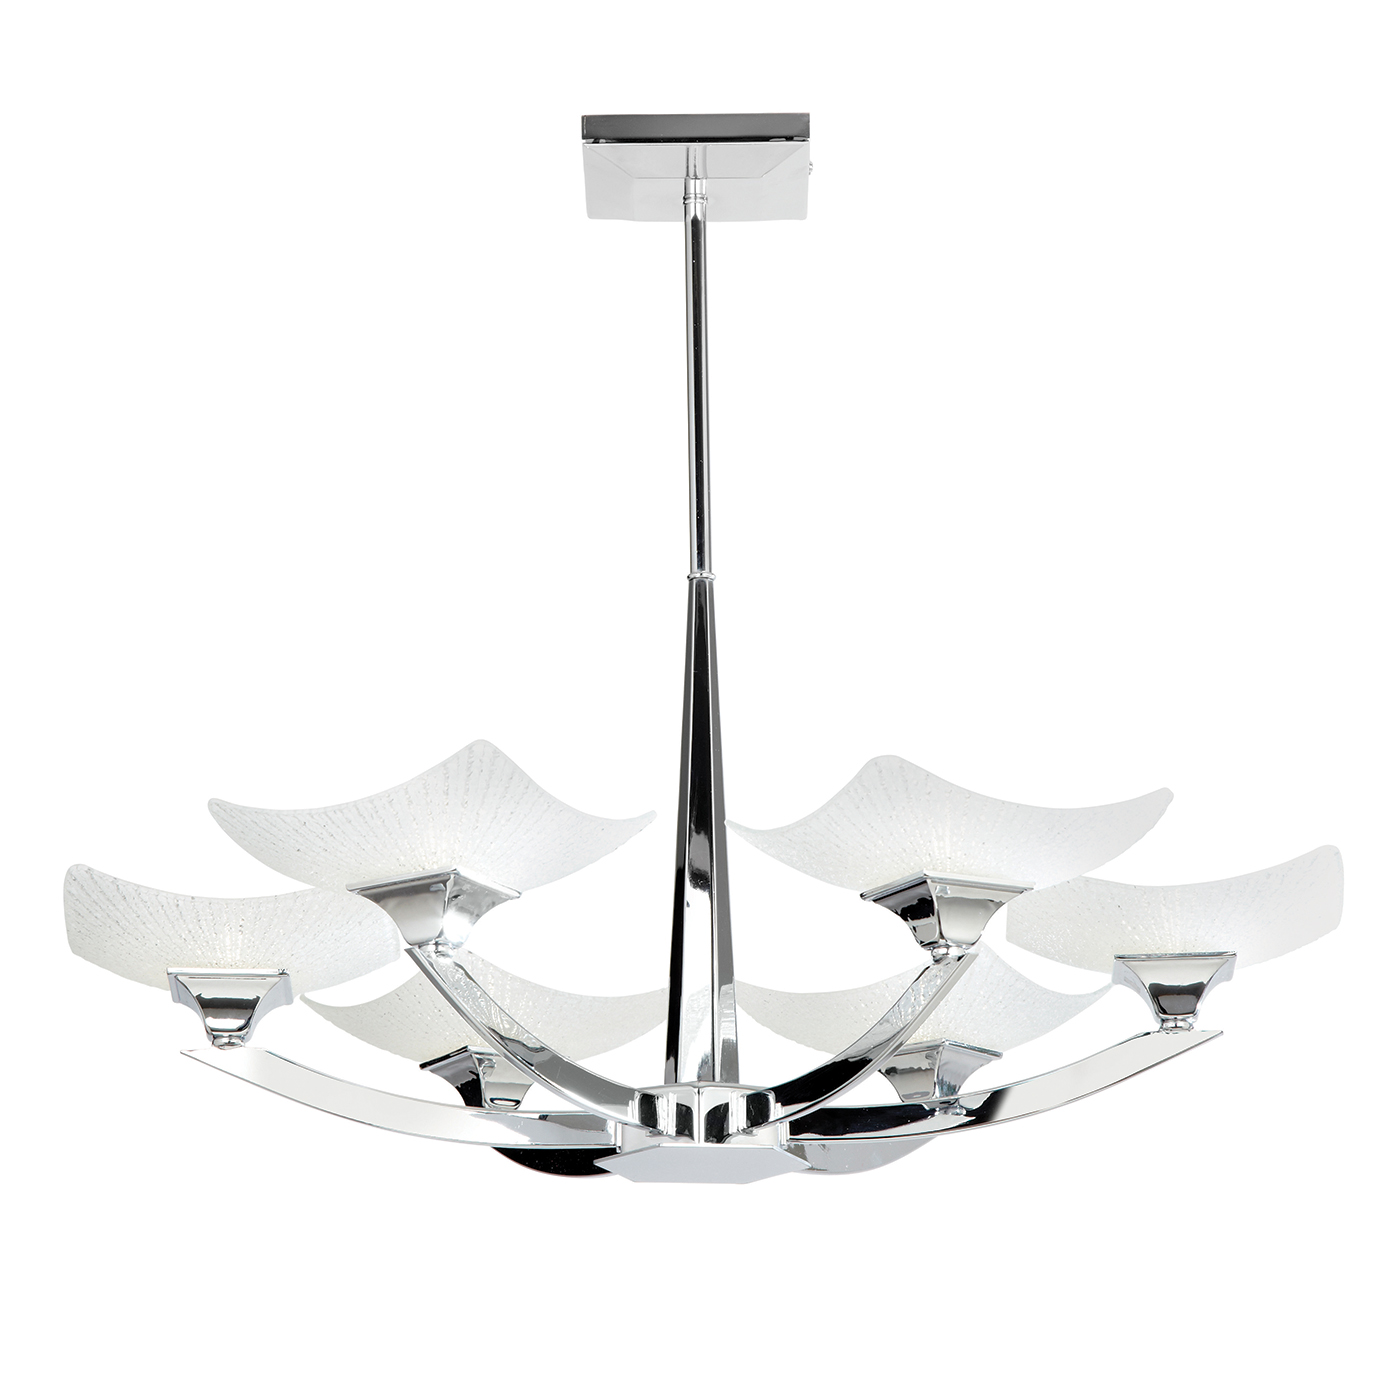 Endon Ayres ceiling light 6x 33W Chrome effect plate & scavo effect glass